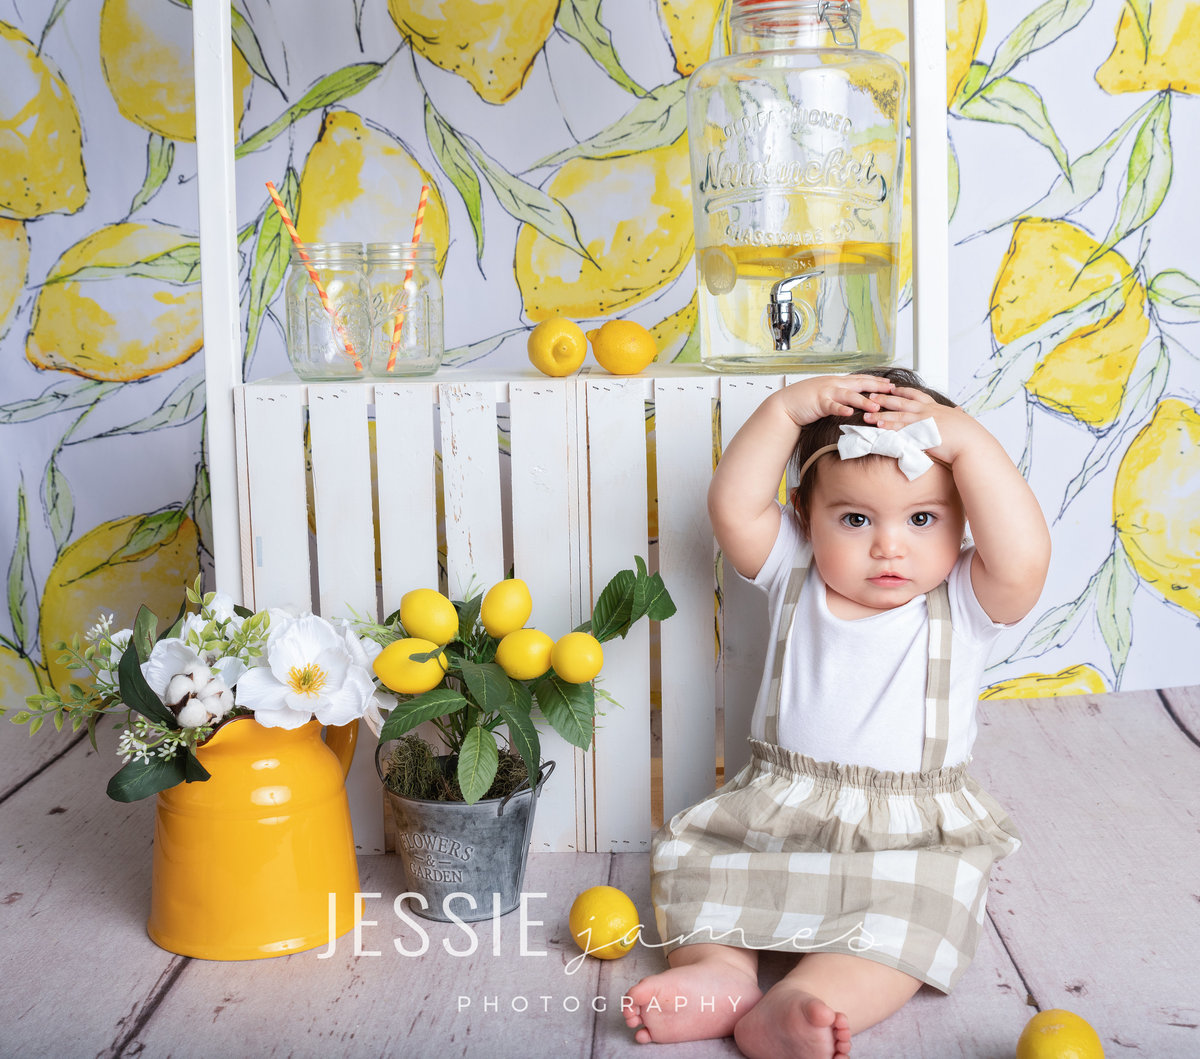 baby girl sitting in front of a lemonade stand for a lemonade themed photoshoot